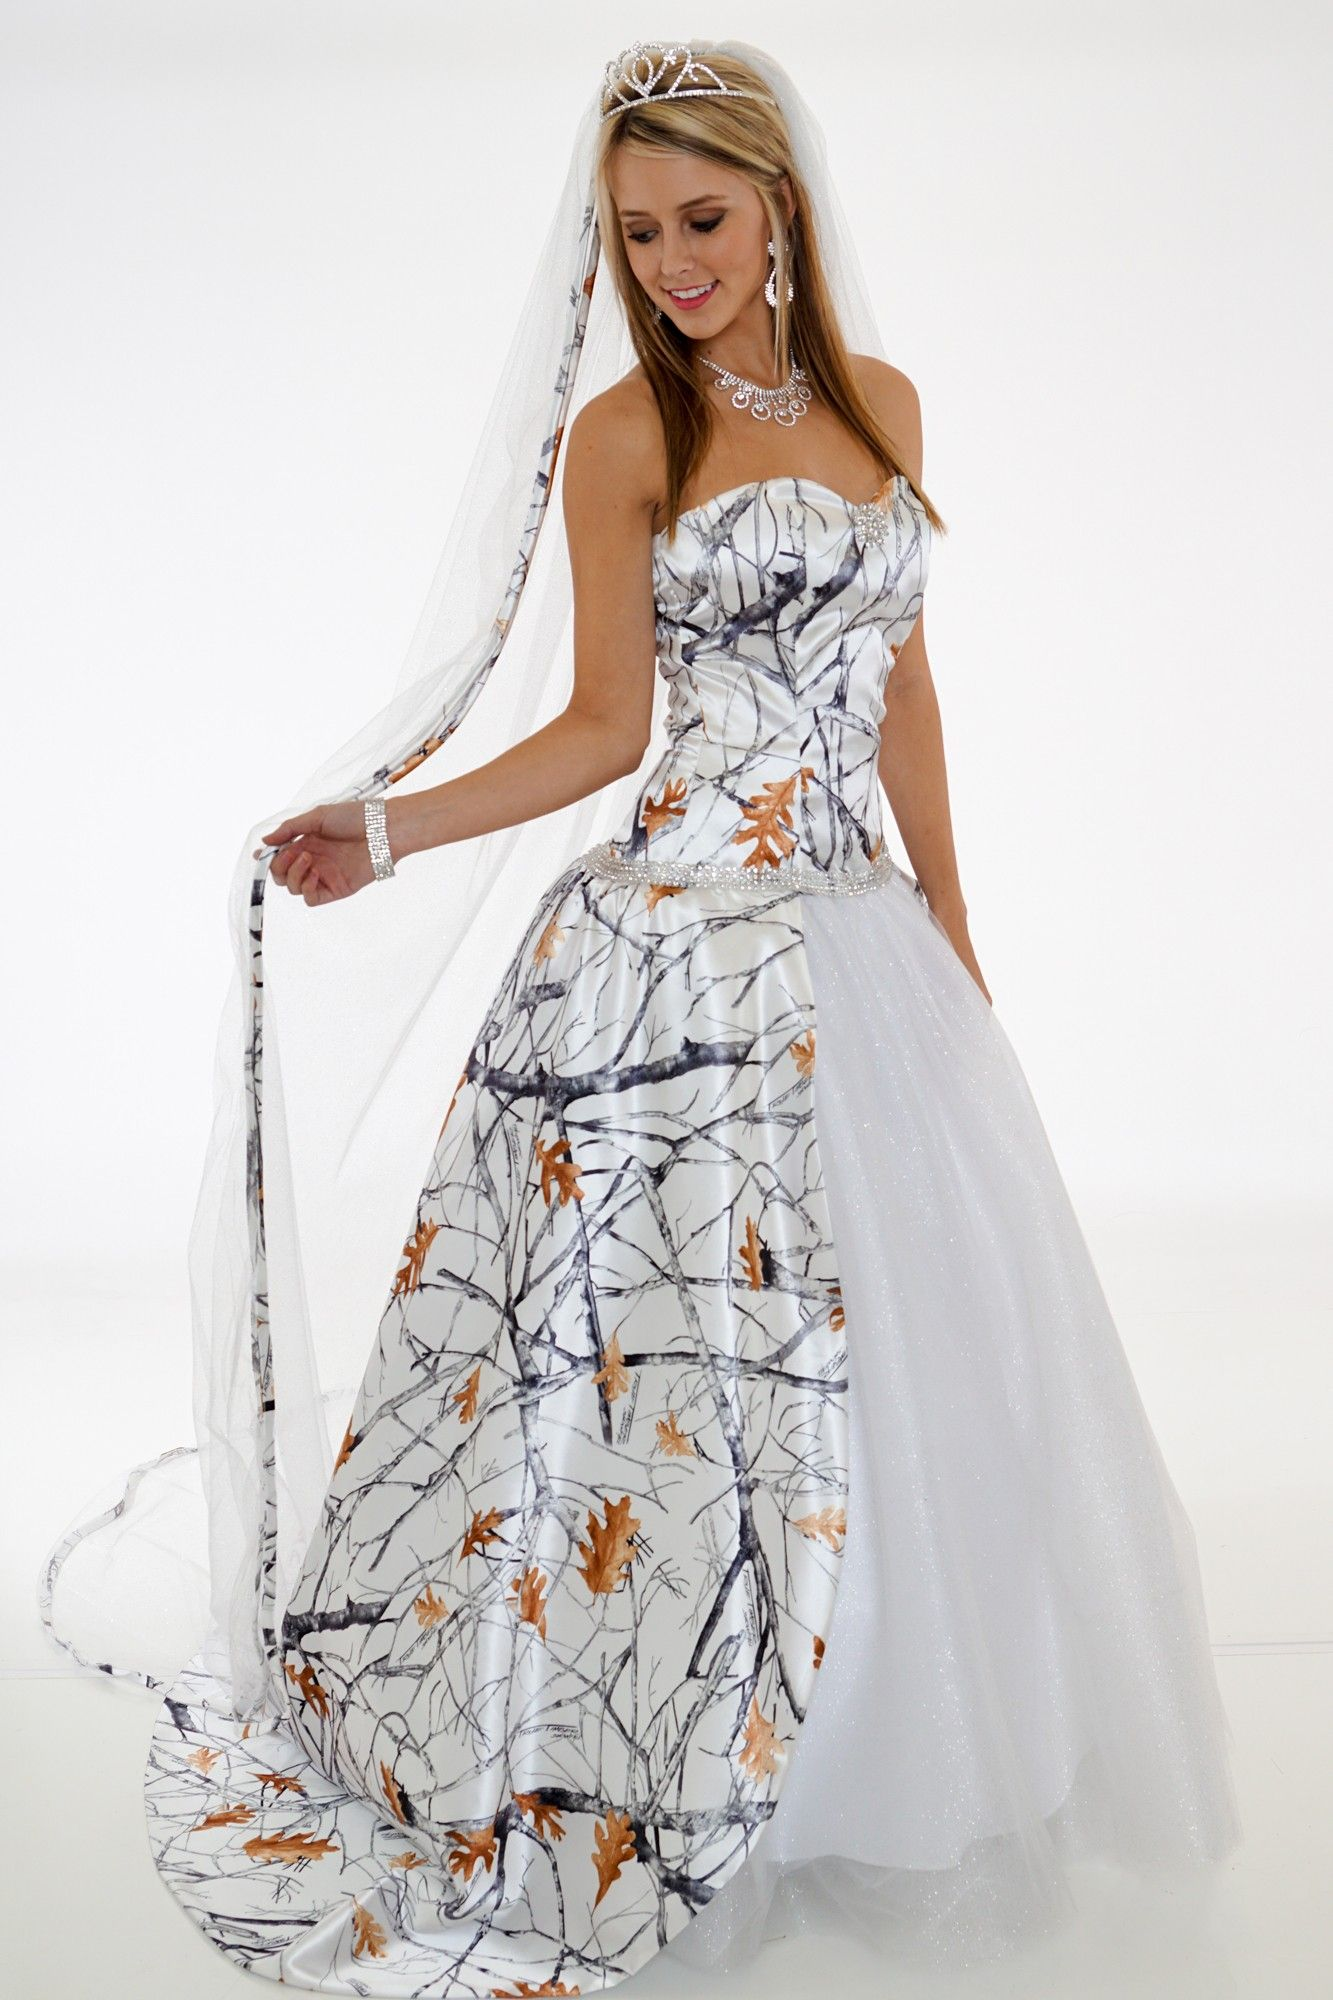 20 Camo Wedding Dresses Ideas You Must Love Camouflage Wedding